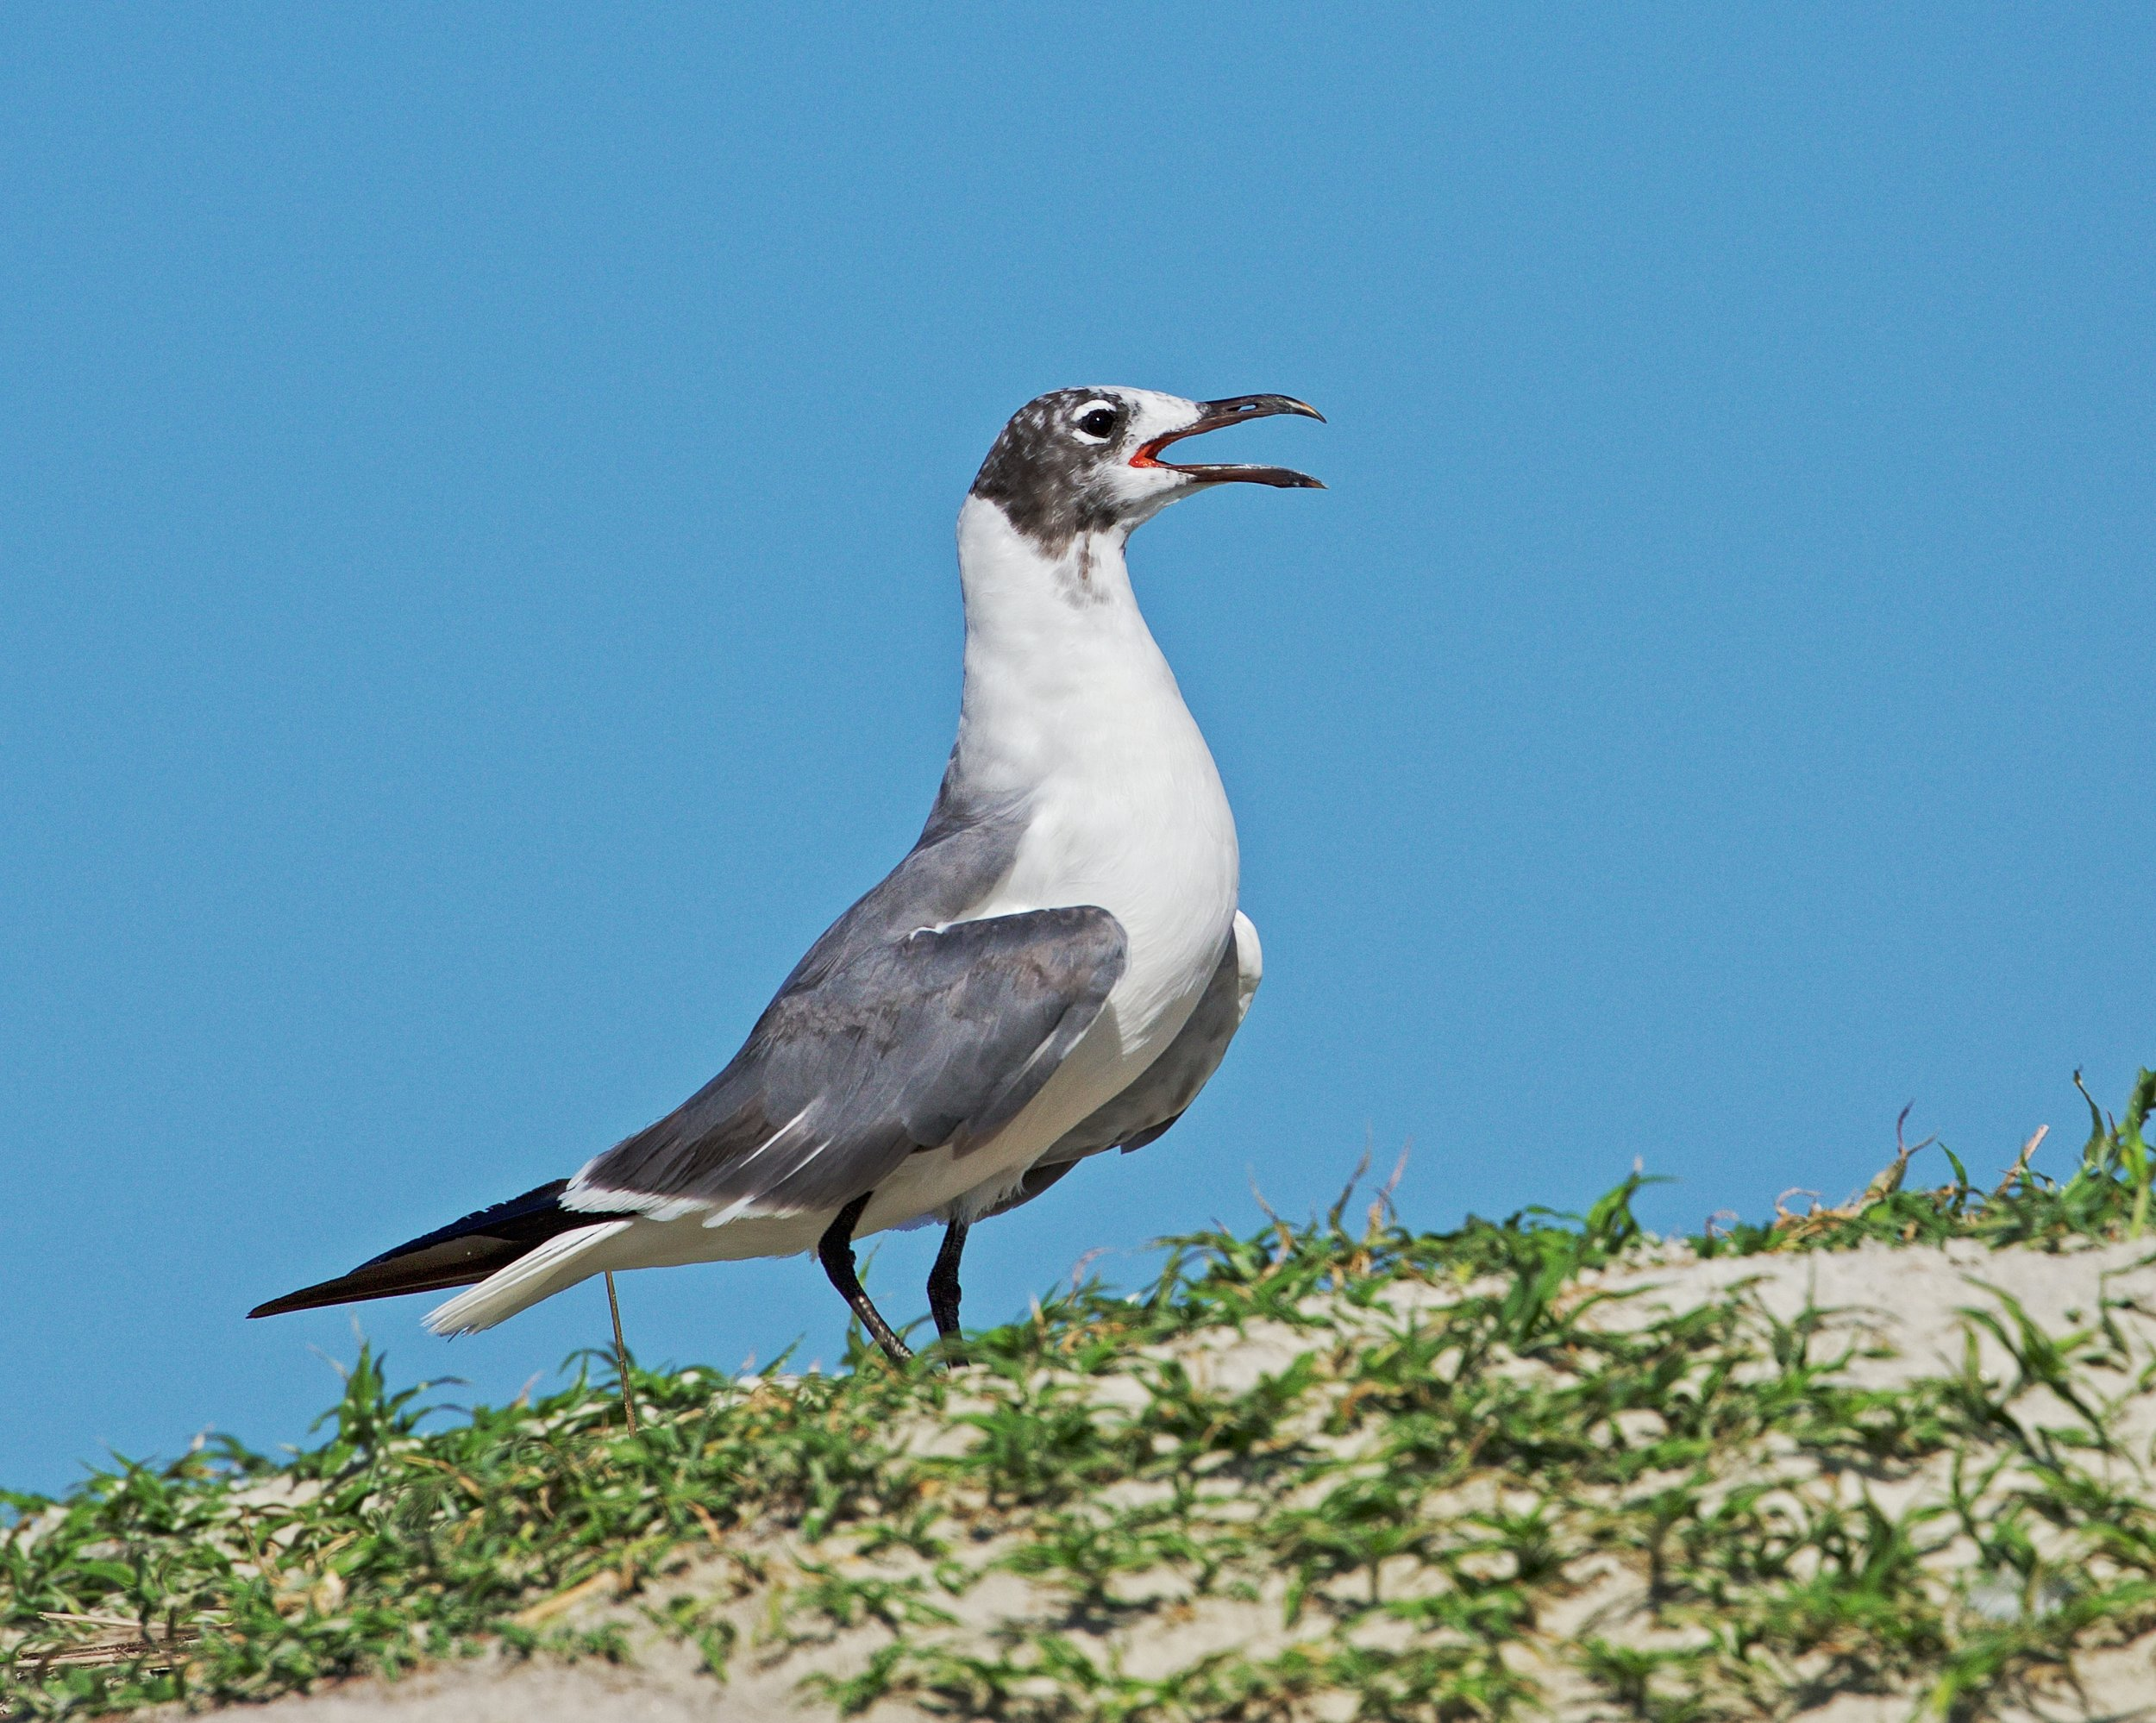 Laughing Gull on vigil sounds the alarm when Turkey Vultures raid the nesting site..note the once jet black breeding colors on the head are fading to grey...sorta like my hair